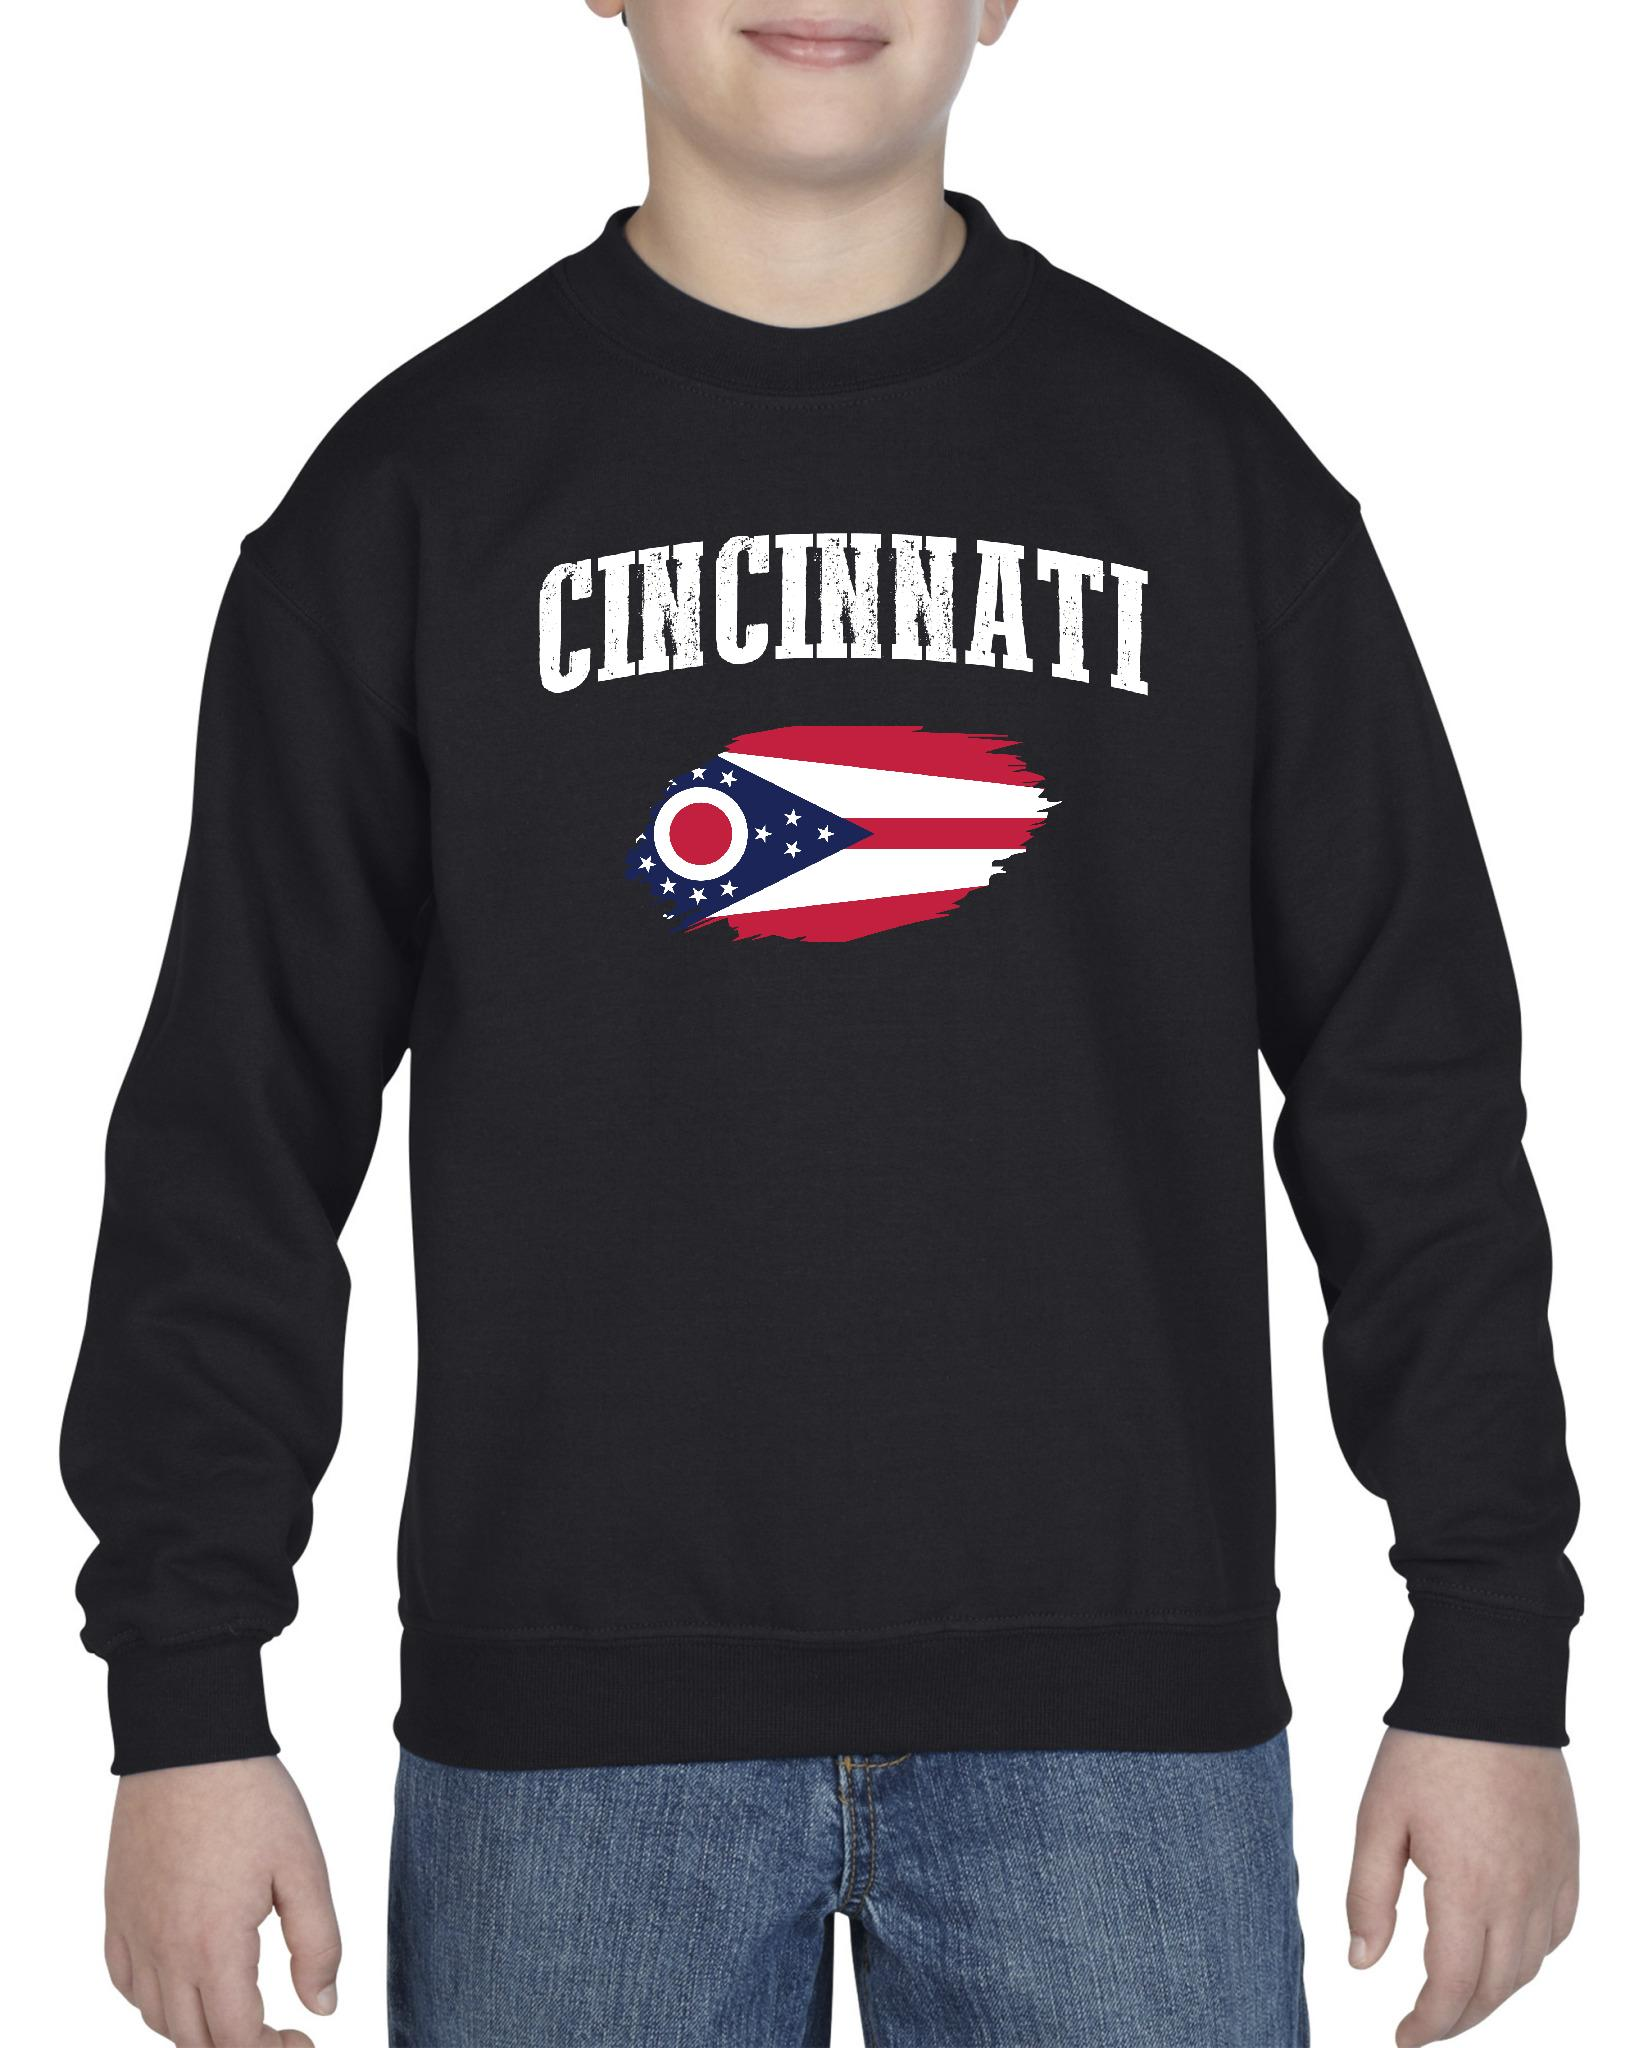 Cincinnati Ohio Youth Crewneck Sweatshirt